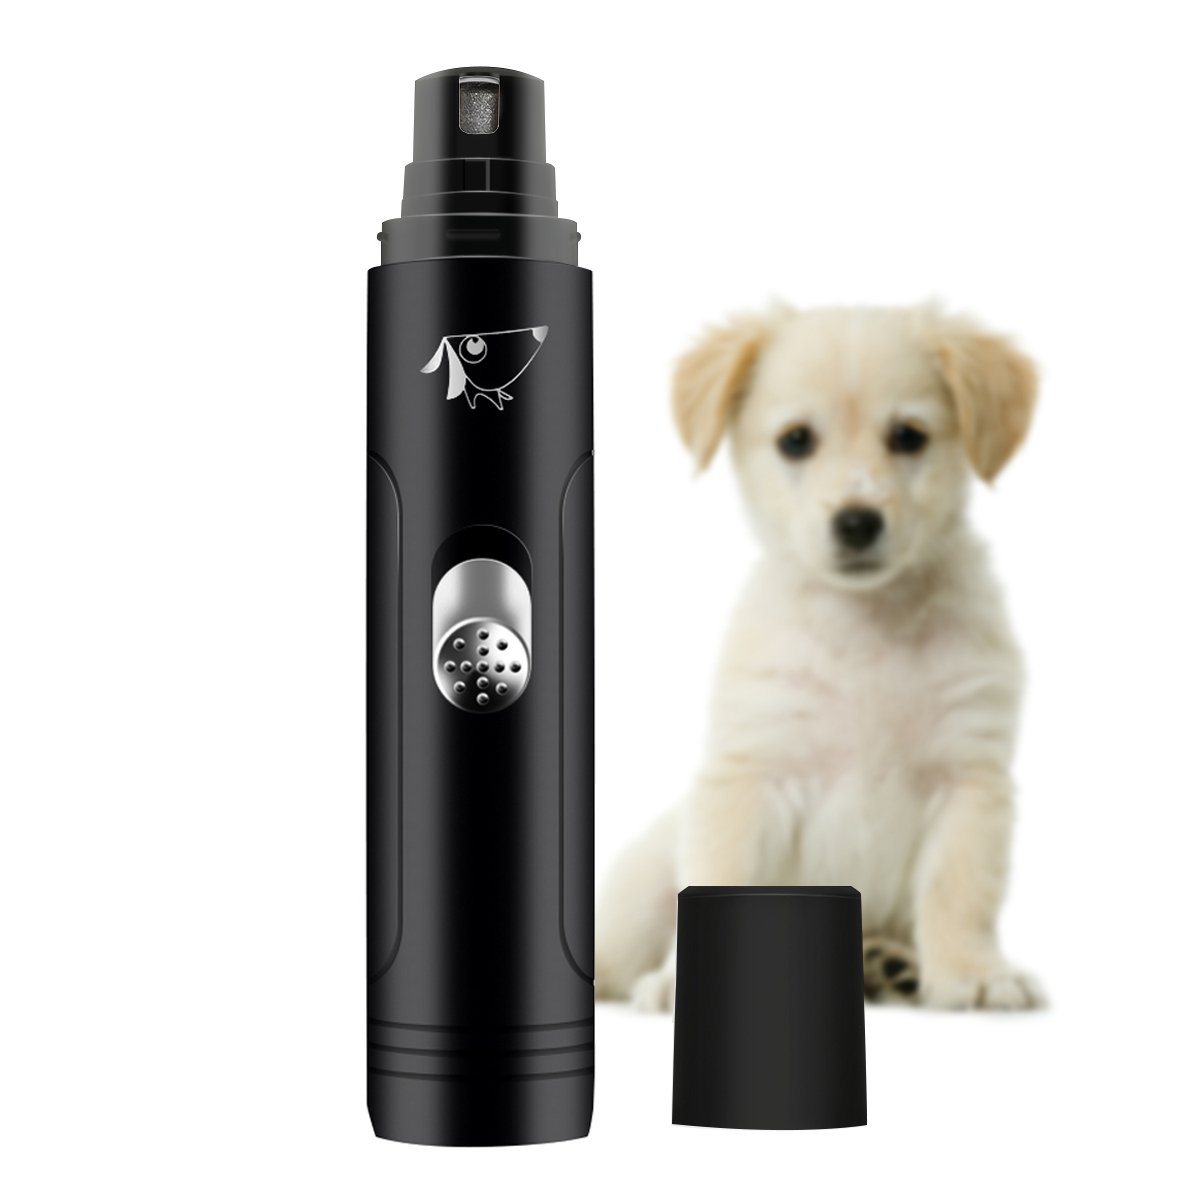 AMIR Full Set Rechargeable Pet Nail Grinder, High-Powered Electric Gentle Paws Nail Grinder Kit, With Clippers and Trimmer, Professional Grooming Kit for Dogs, Cats & All Other Pets by AMIR (Image #7)